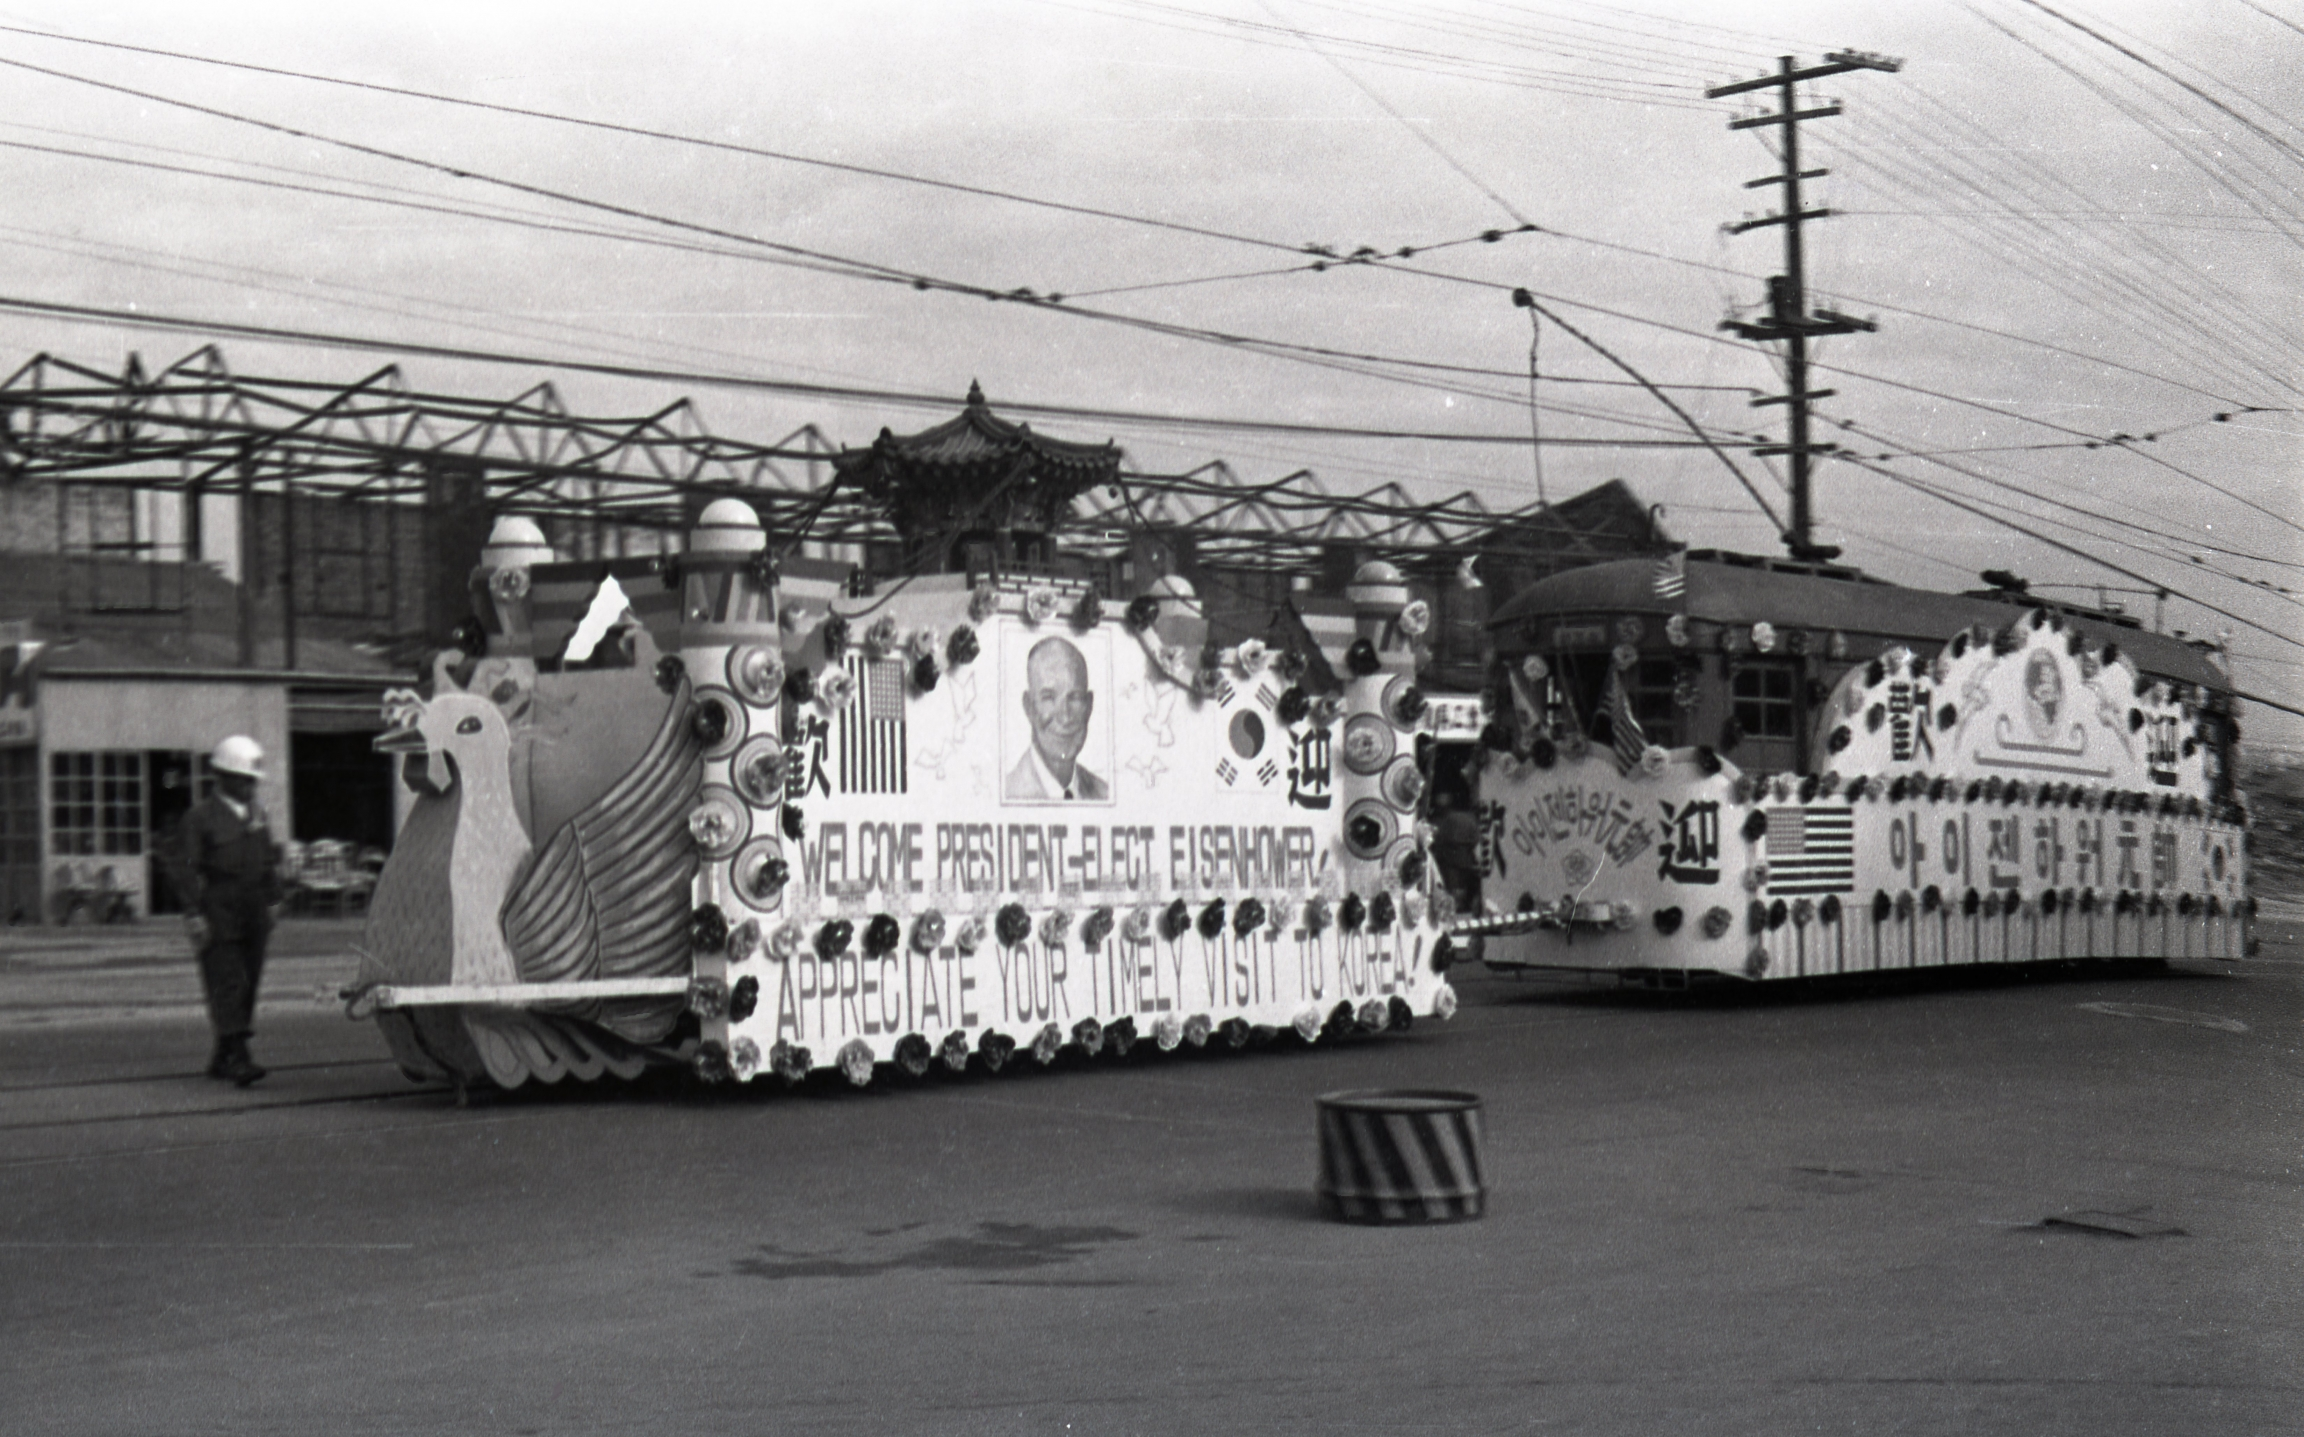 a parade in korea for president-elect eisenhower